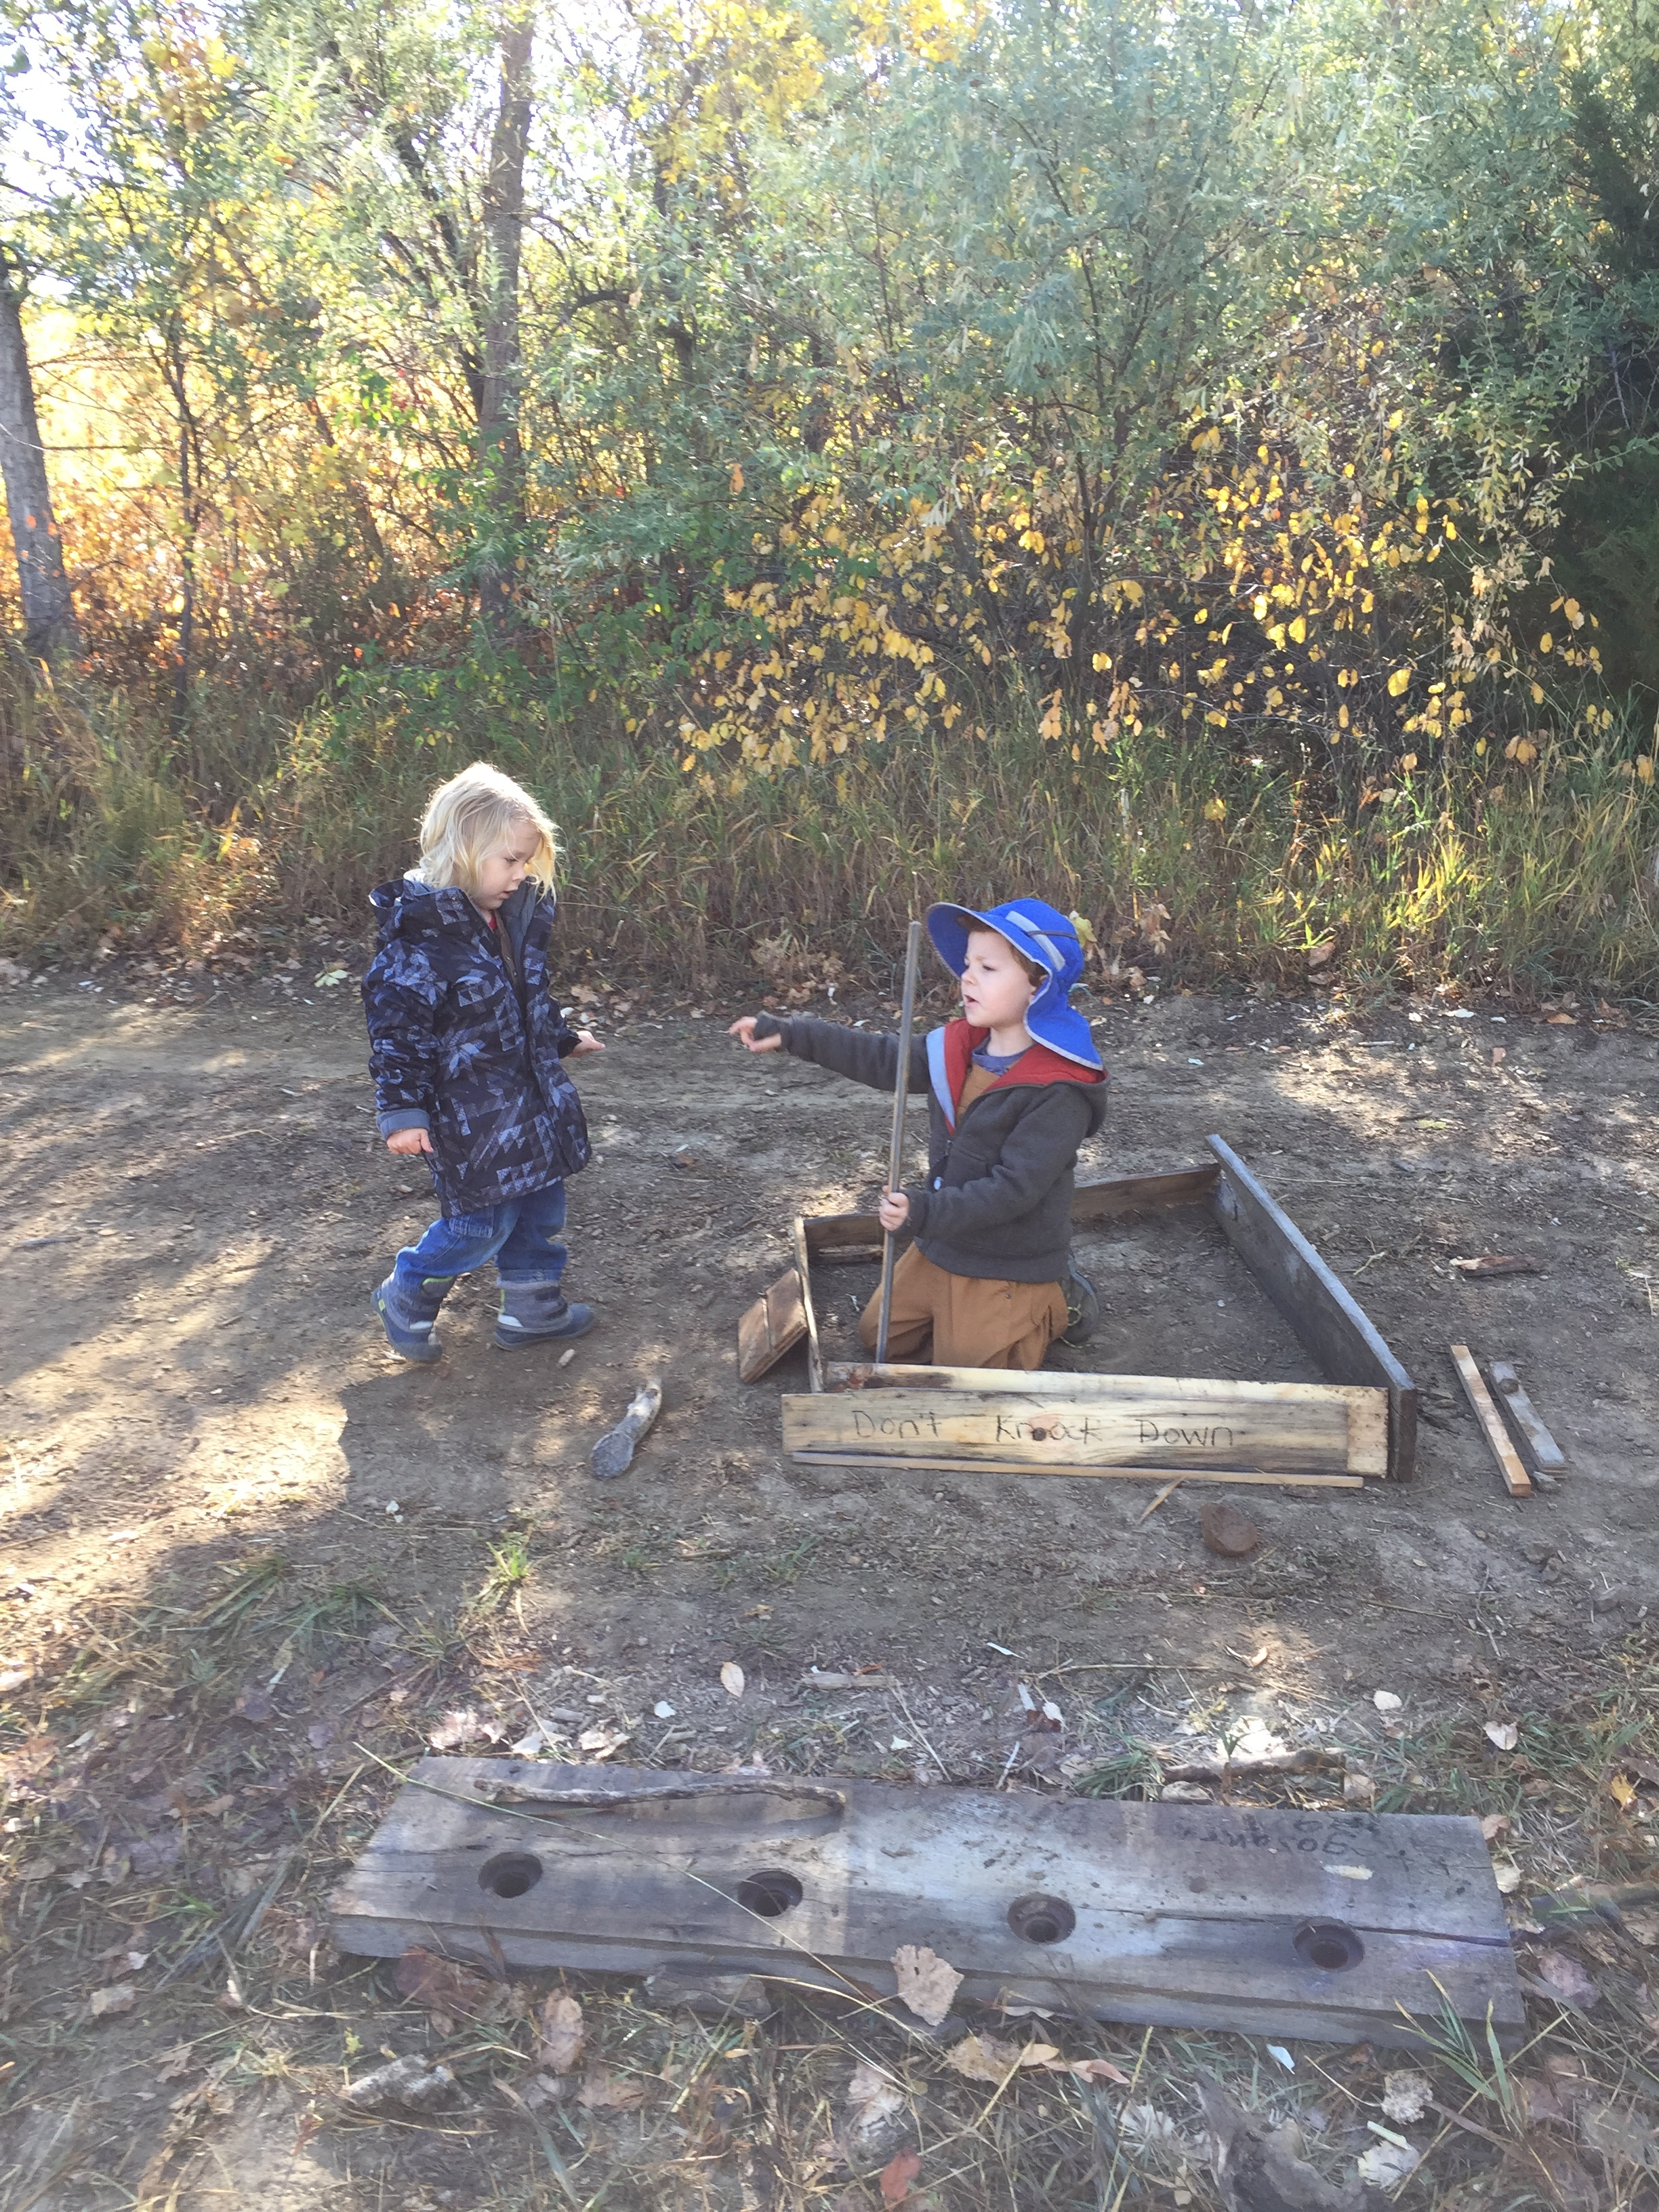 Working together—later these two plus another friend tilled their soil with sticks. The shorter sticks were easier to use, they reported.